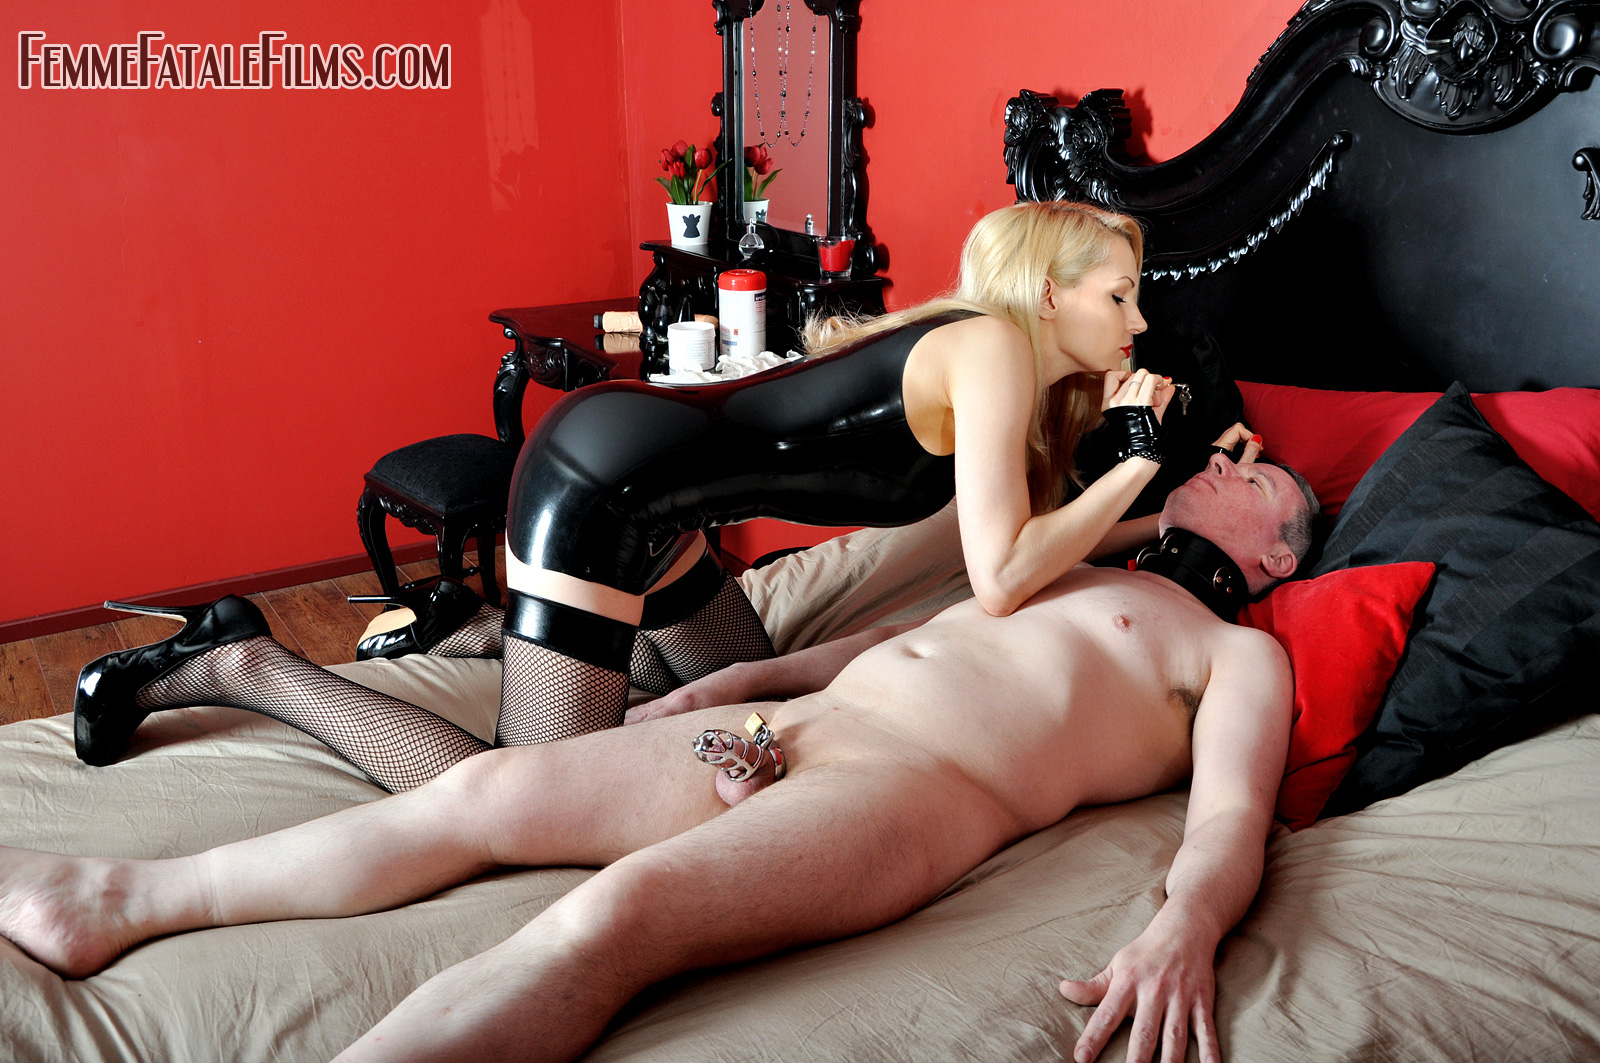 Femdom porn for women — photo 2